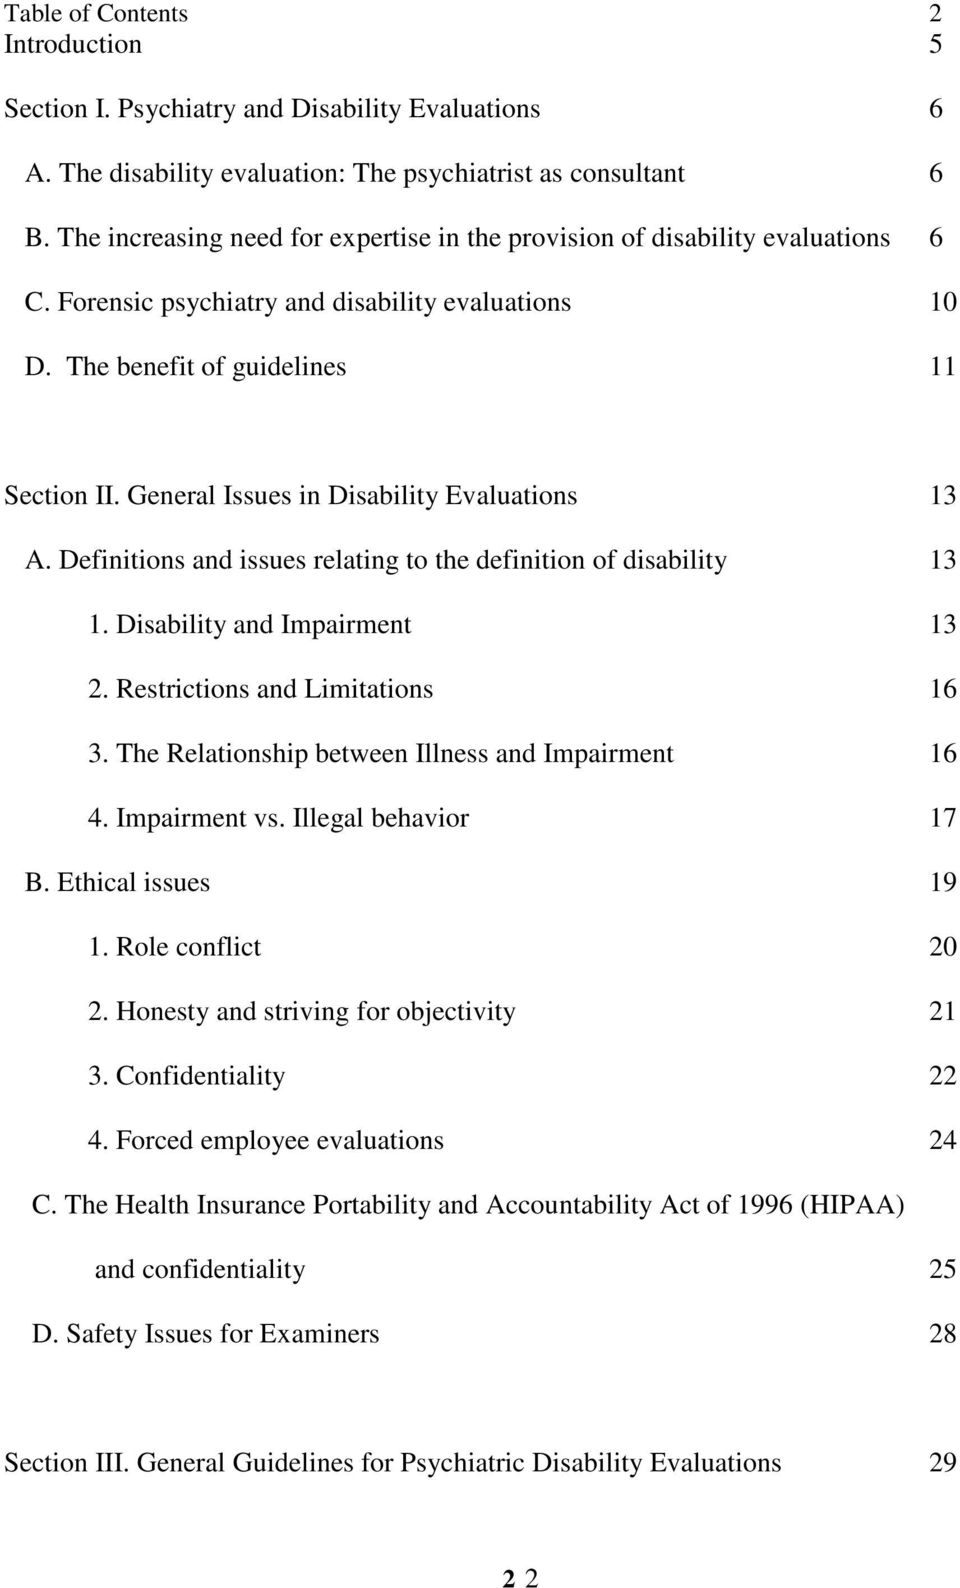 General Issues in Disability Evaluations 13 A. Definitions and issues relating to the definition of disability 13 1. Disability and Impairment 13 2. Restrictions and Limitations 16 3.